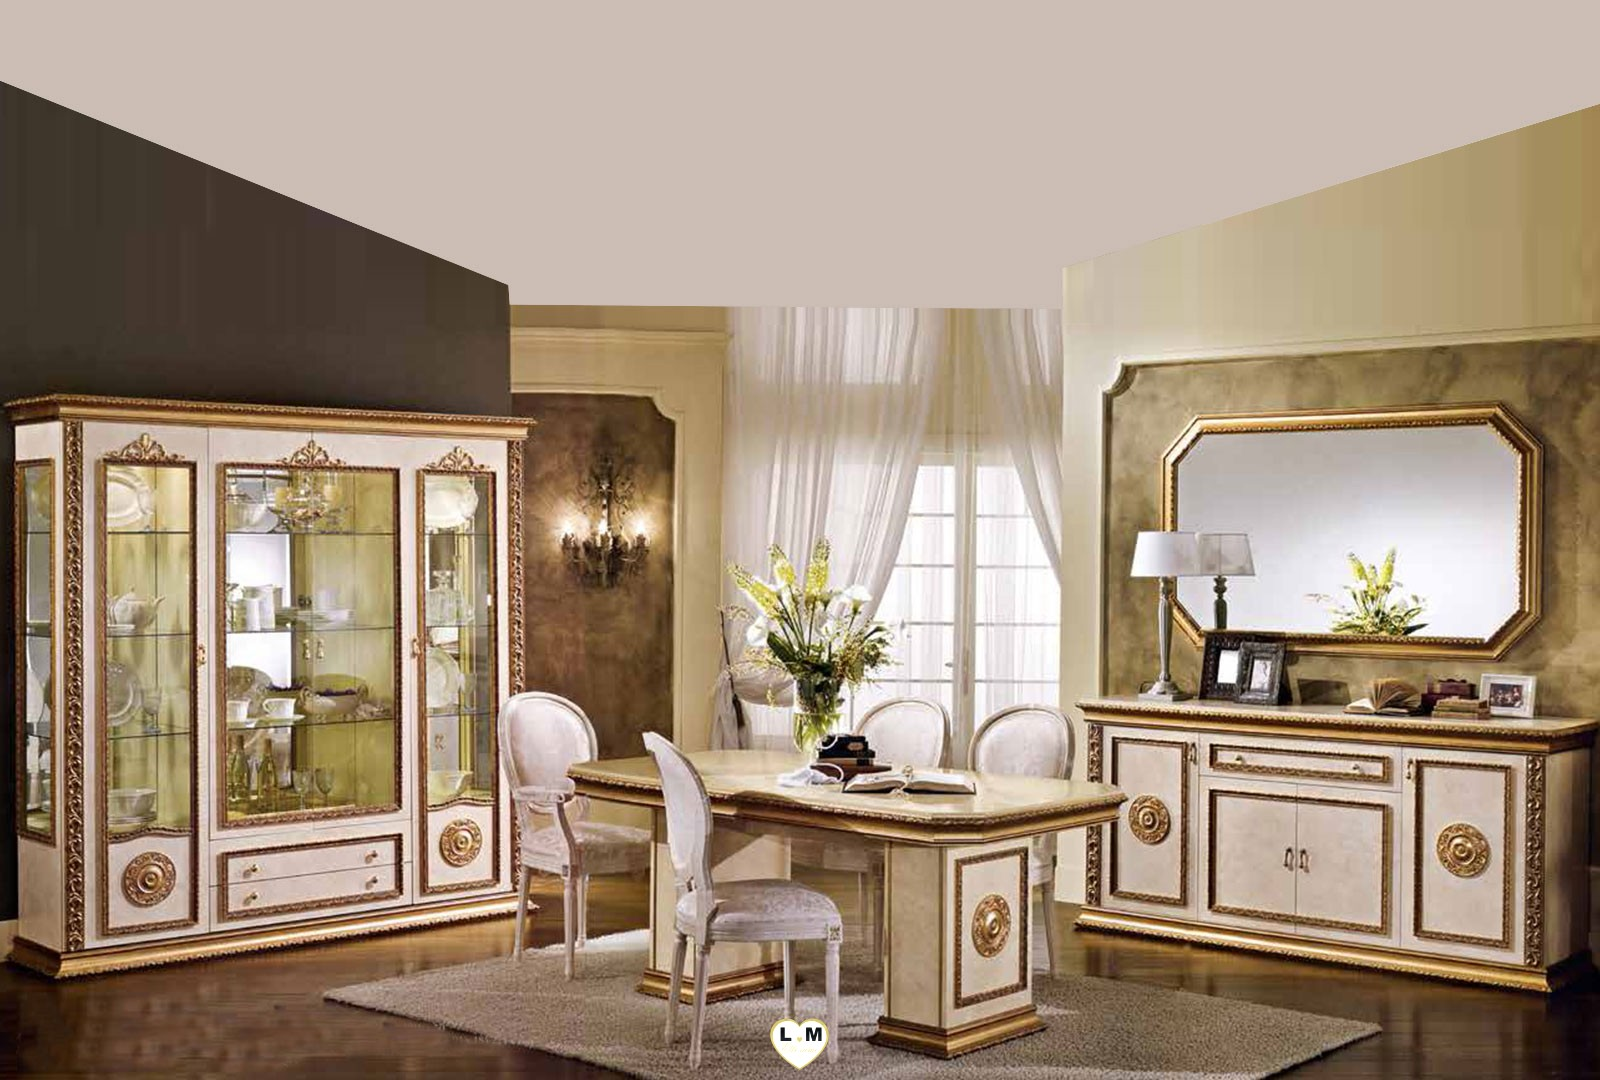 luigi laque ivoire et dore ensemble salle a manger lignemeuble com. Black Bedroom Furniture Sets. Home Design Ideas